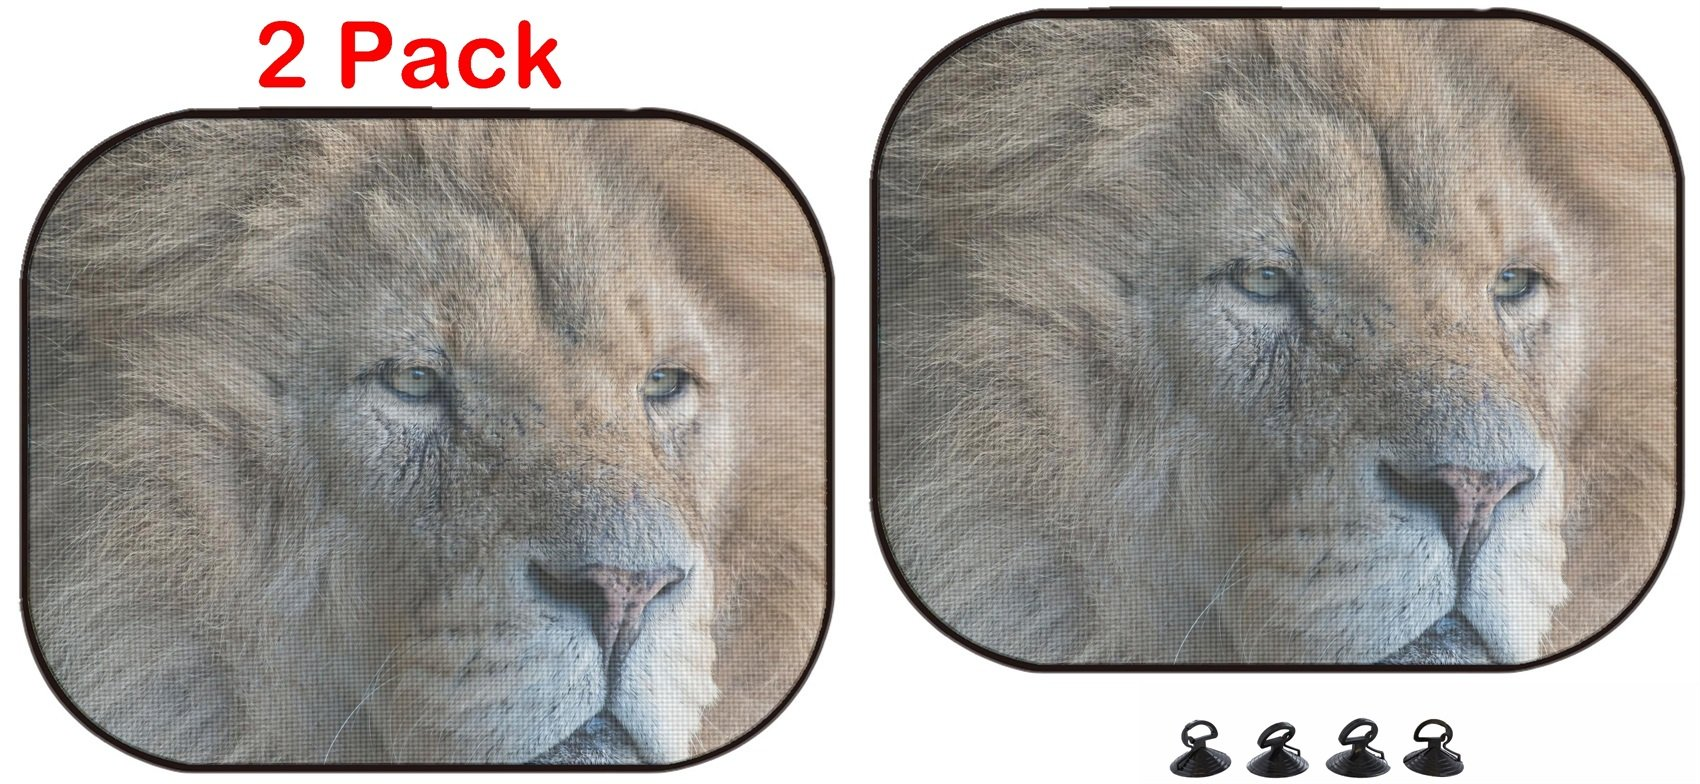 Luxlady Car Sun Shade Protector Block Damaging UV Rays Sunlight Heat for All Vehicles, 2 Pack Lion Headshot Close up Image ID 25241584